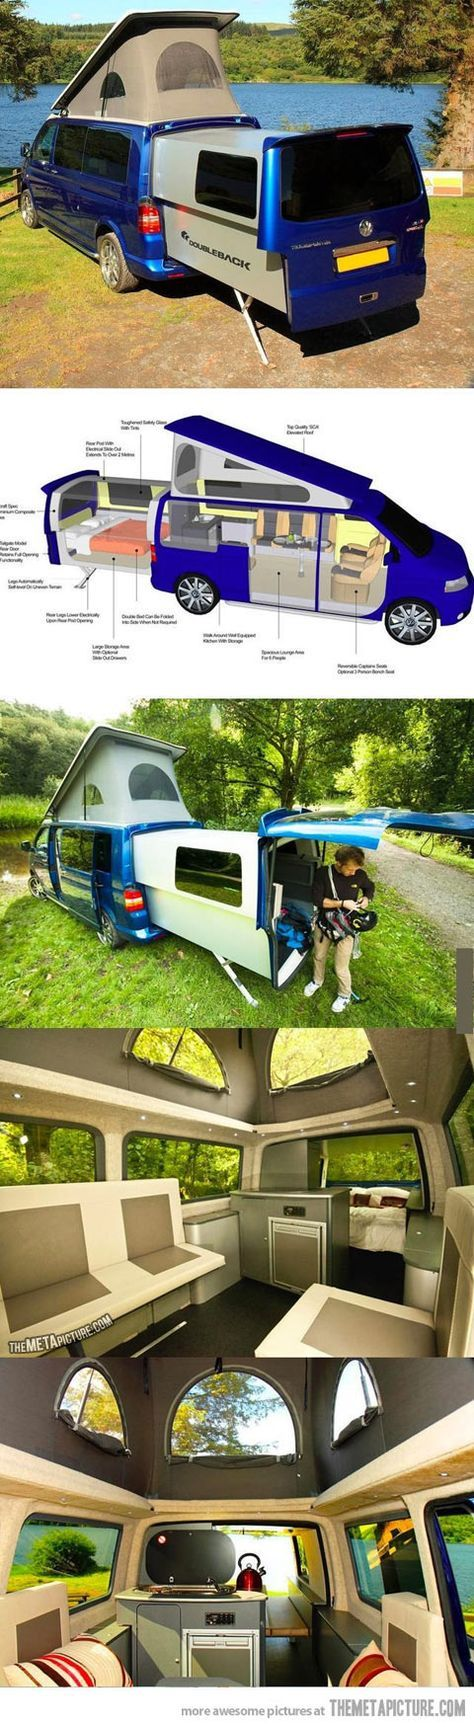 die besten 25 vw busse ideen auf pinterest vw camper. Black Bedroom Furniture Sets. Home Design Ideas